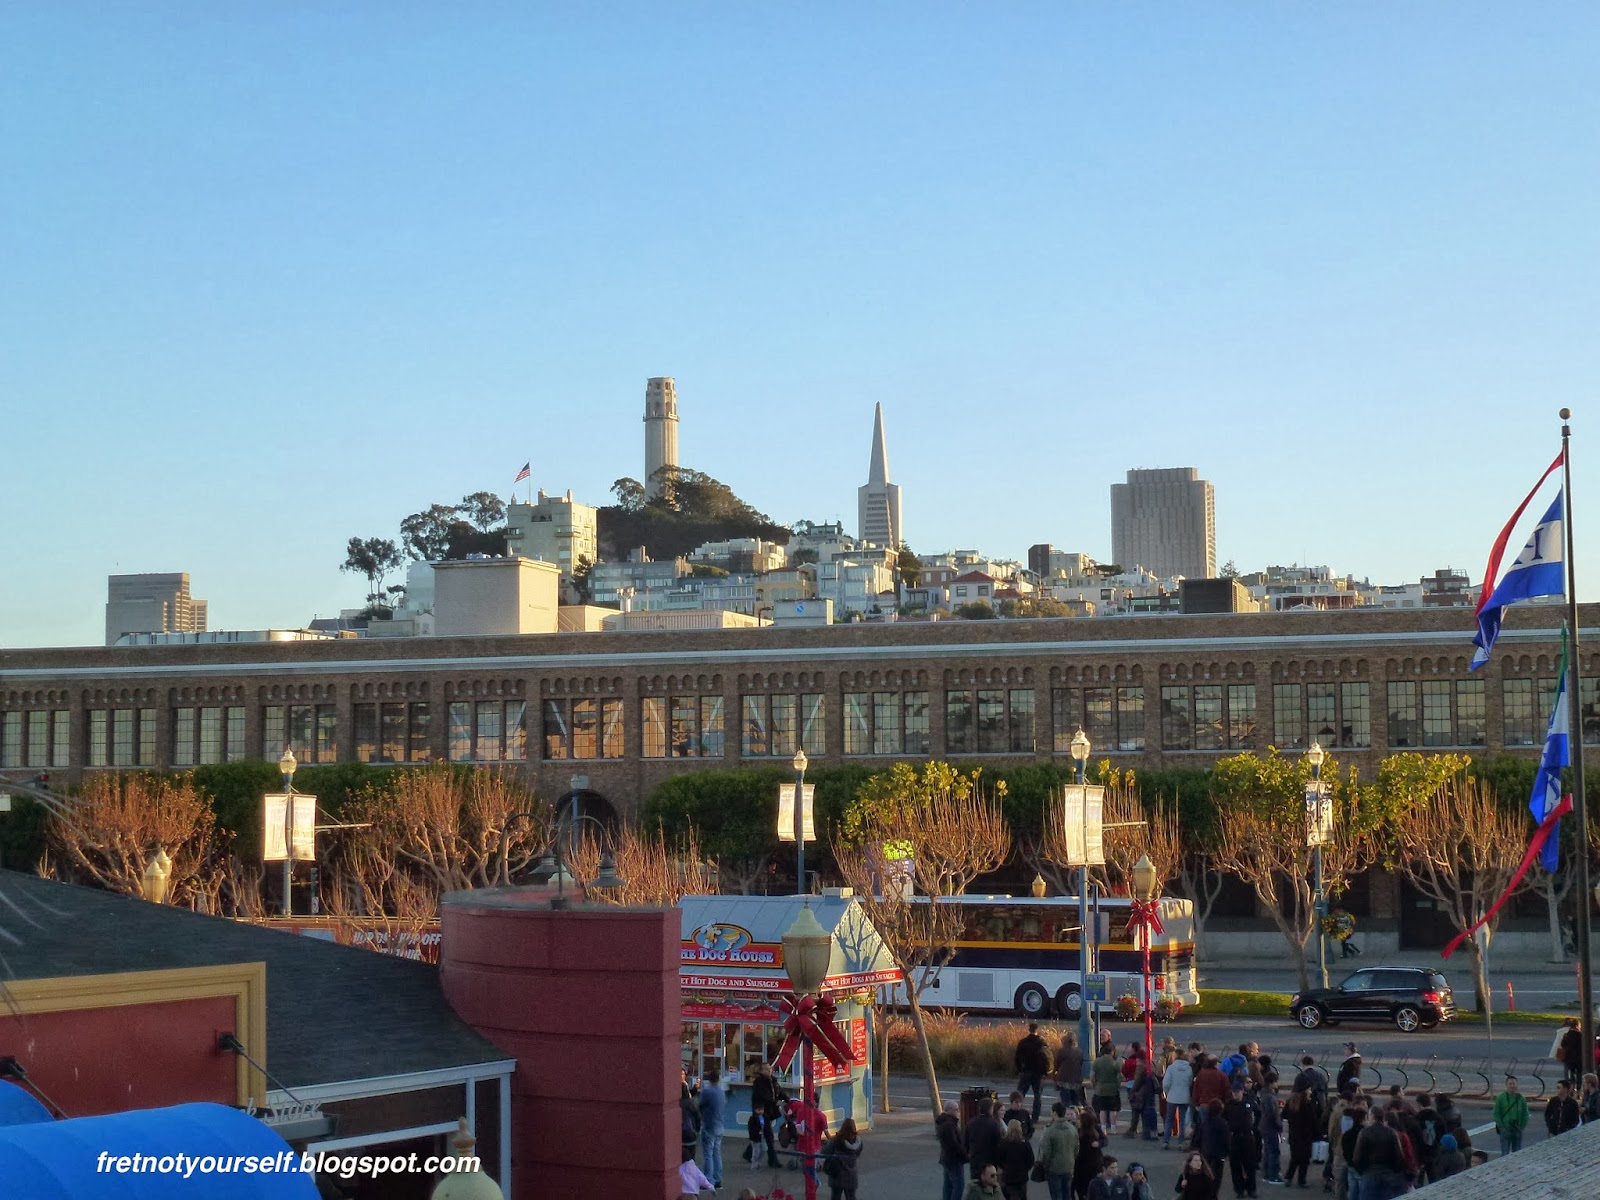 Coit Tower pierces the blue sky to the left of the Transamerica building. Buses, cars and many people are visible in the foreground.